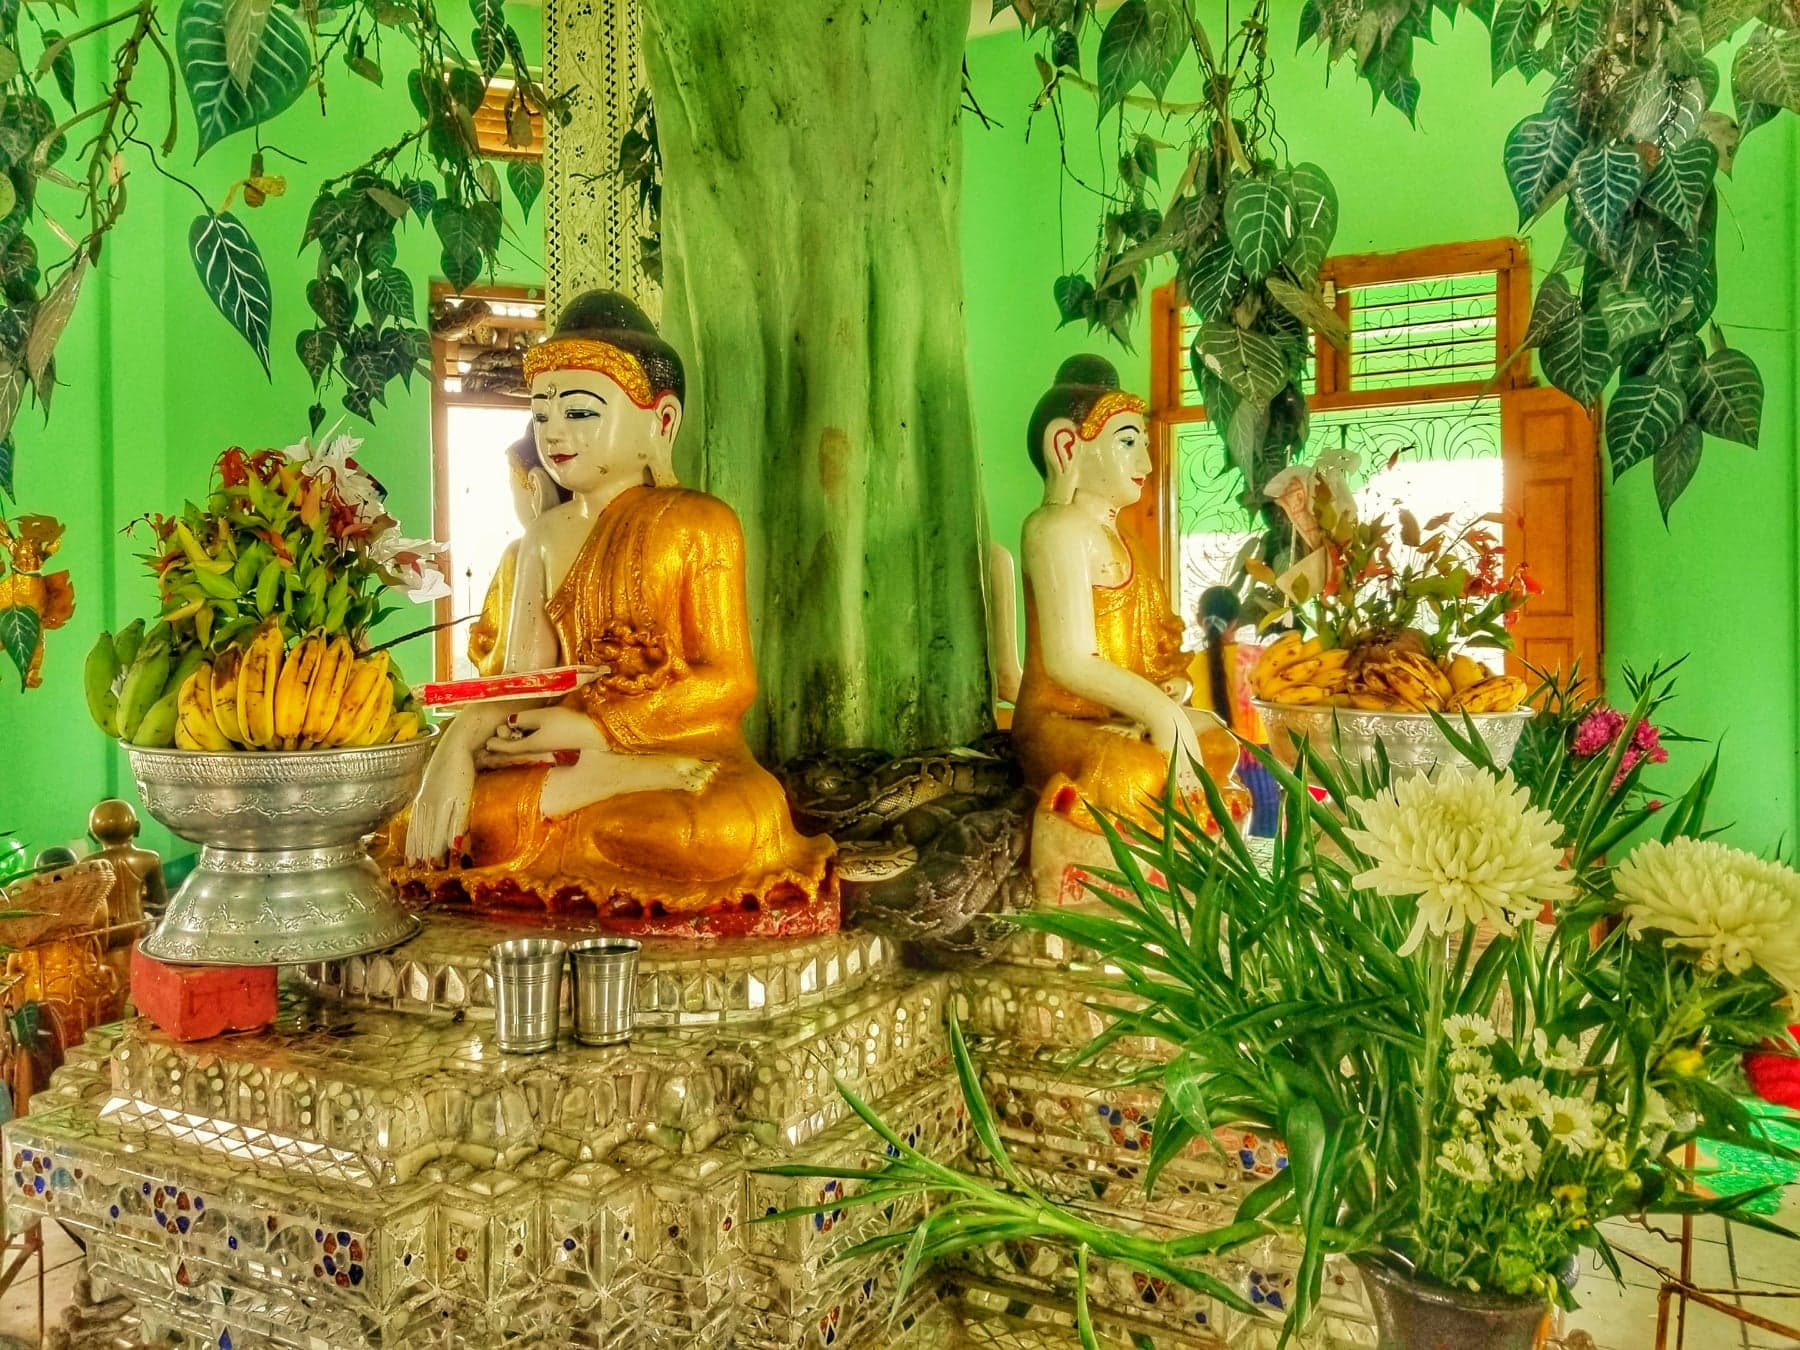 Yangon Myanmar points of interest - Paung Taw Pagoda inside